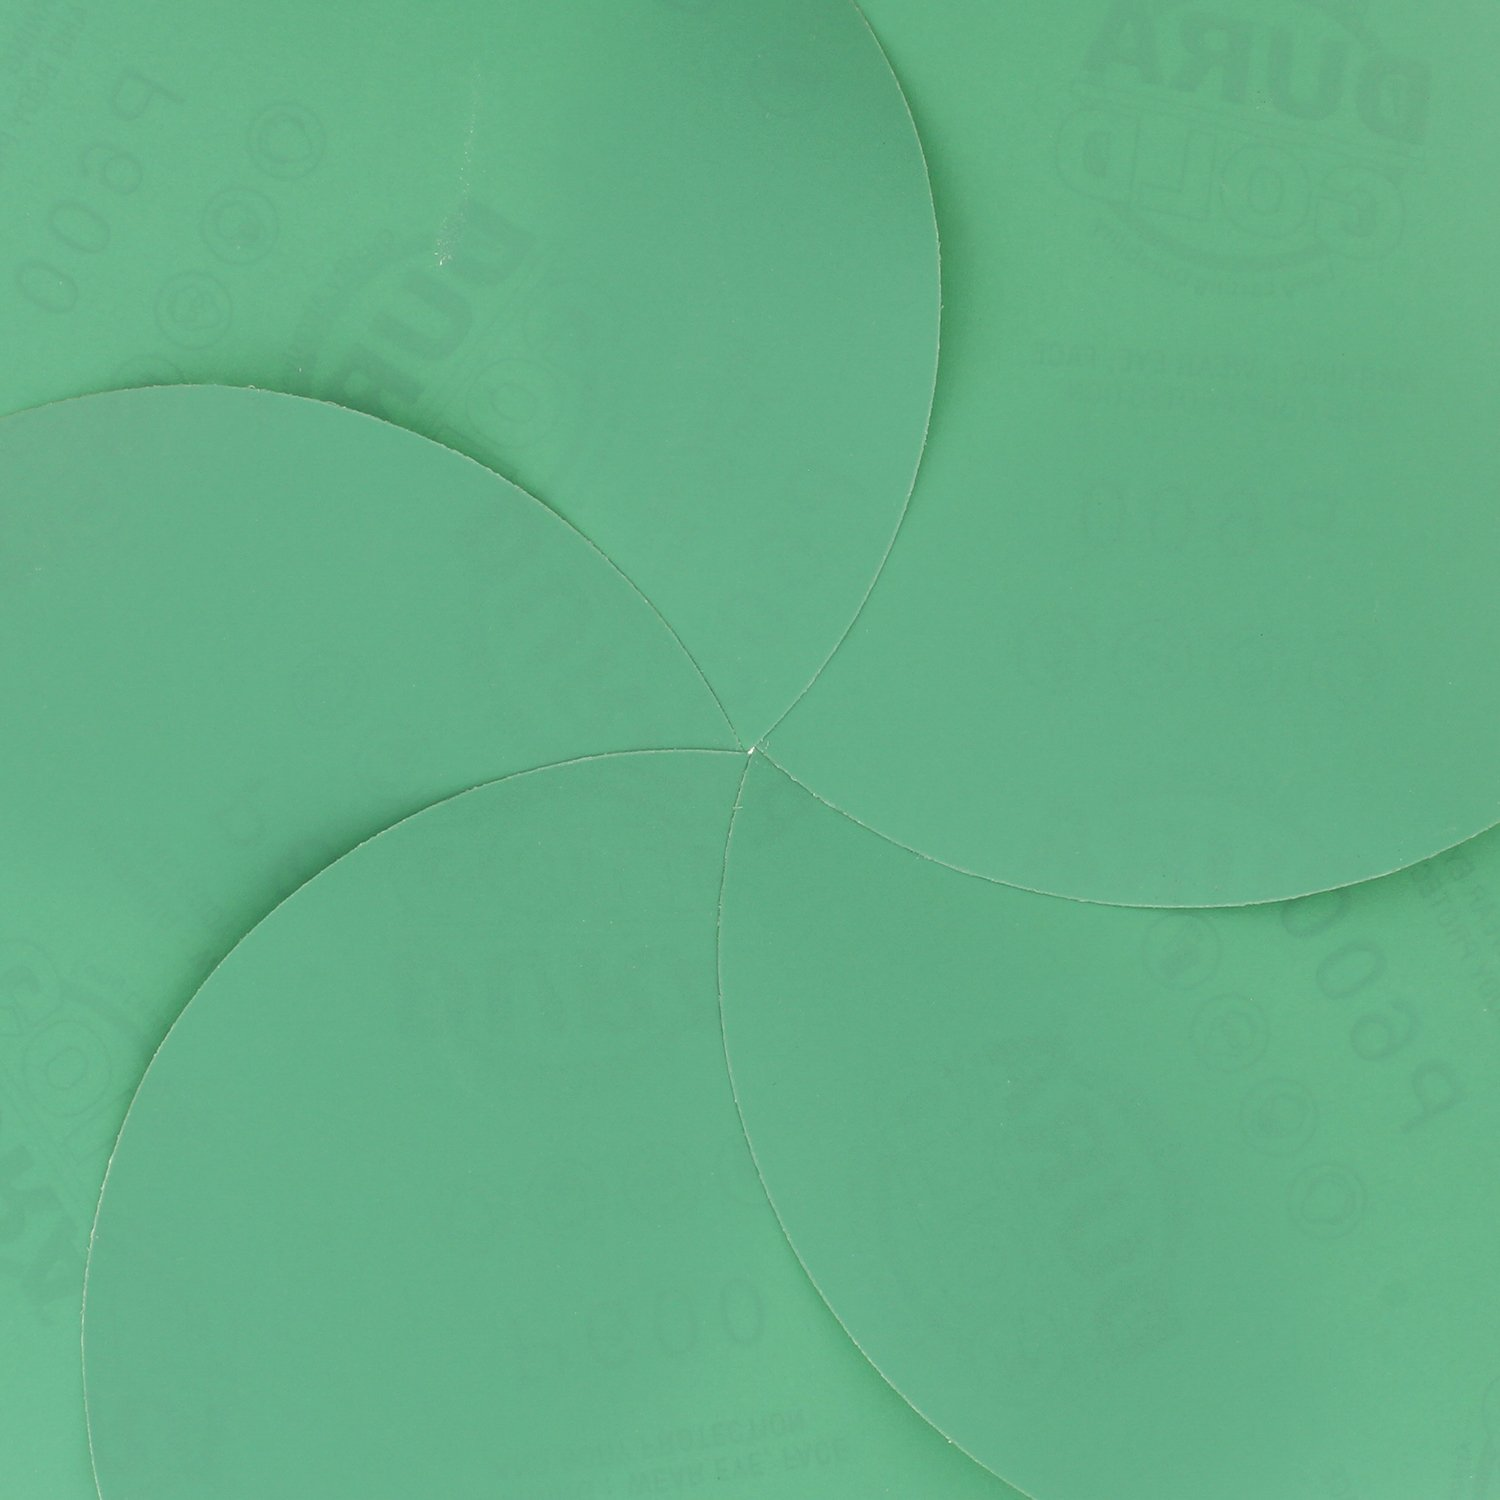 80, 120, 220, 320, 400 Premium Film Back Variety//Assortment Pack 6 Green Film PSA Self Adhesive Stickyback Sanding Discs 5 of Each grit - Box of 25 Total Sandpaper Finishing Discs Dura-Gold